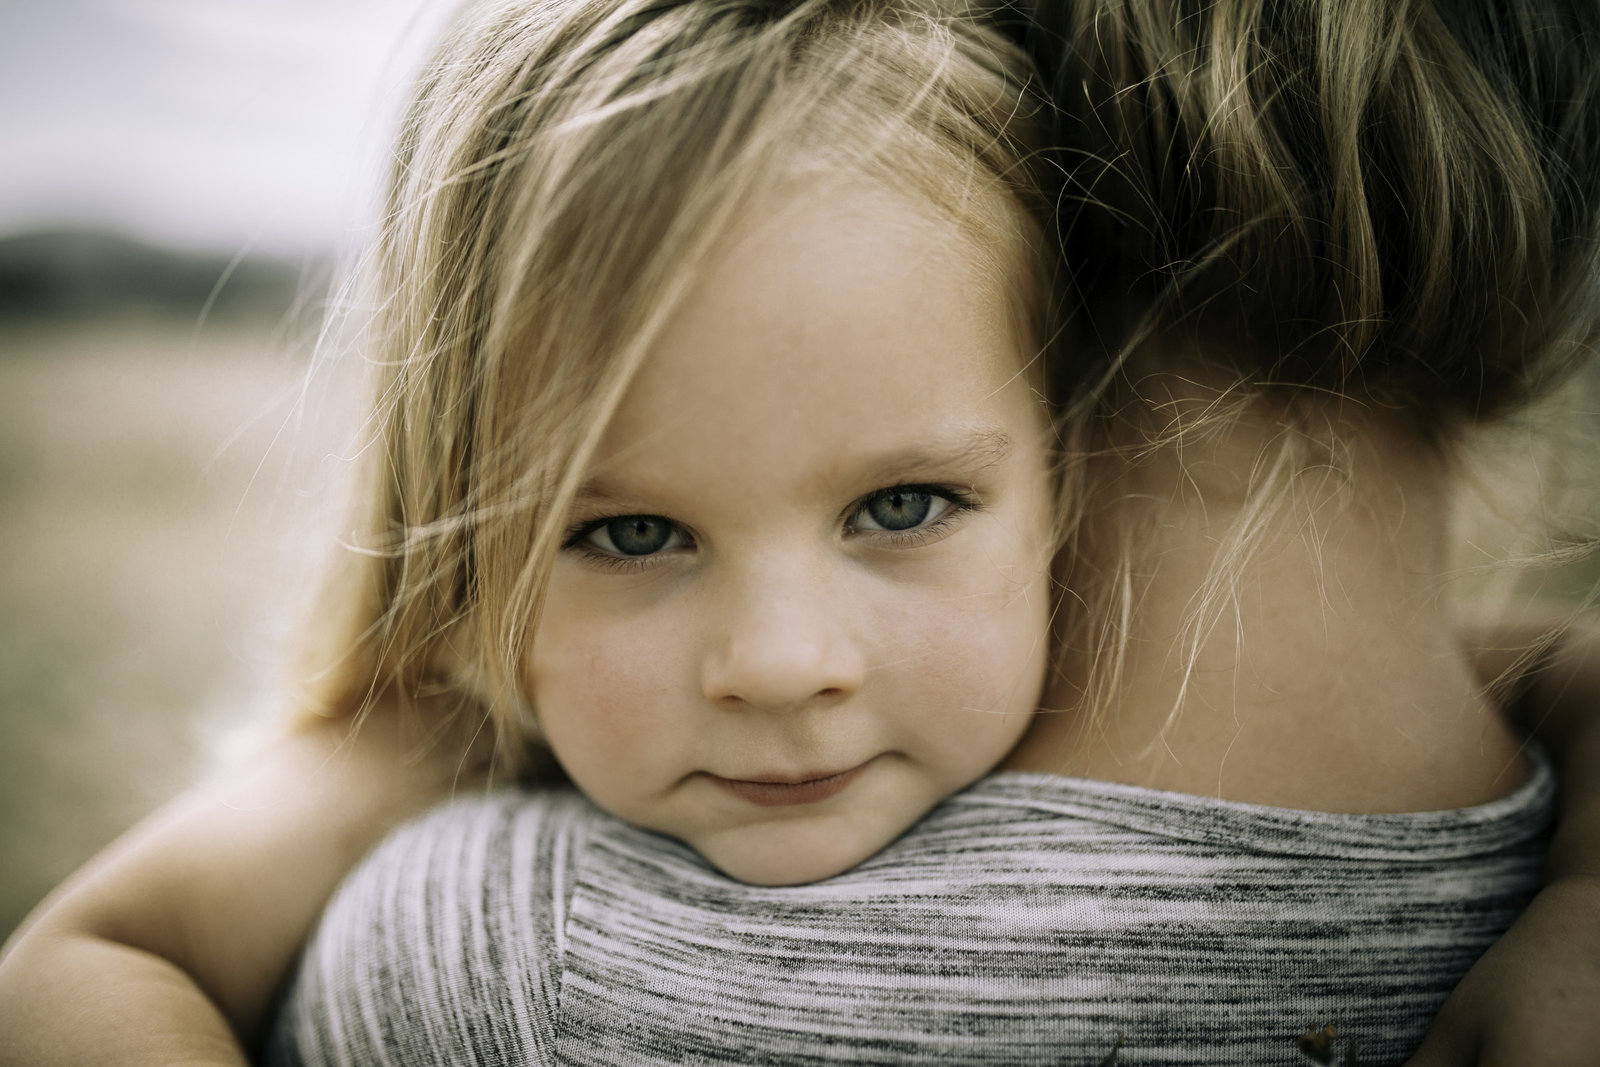 Little girl over mums shoulder up close intimate photo with big blue eyes and blonde hair. Melbourne Family Photography session with Sapphire and Stone Photography